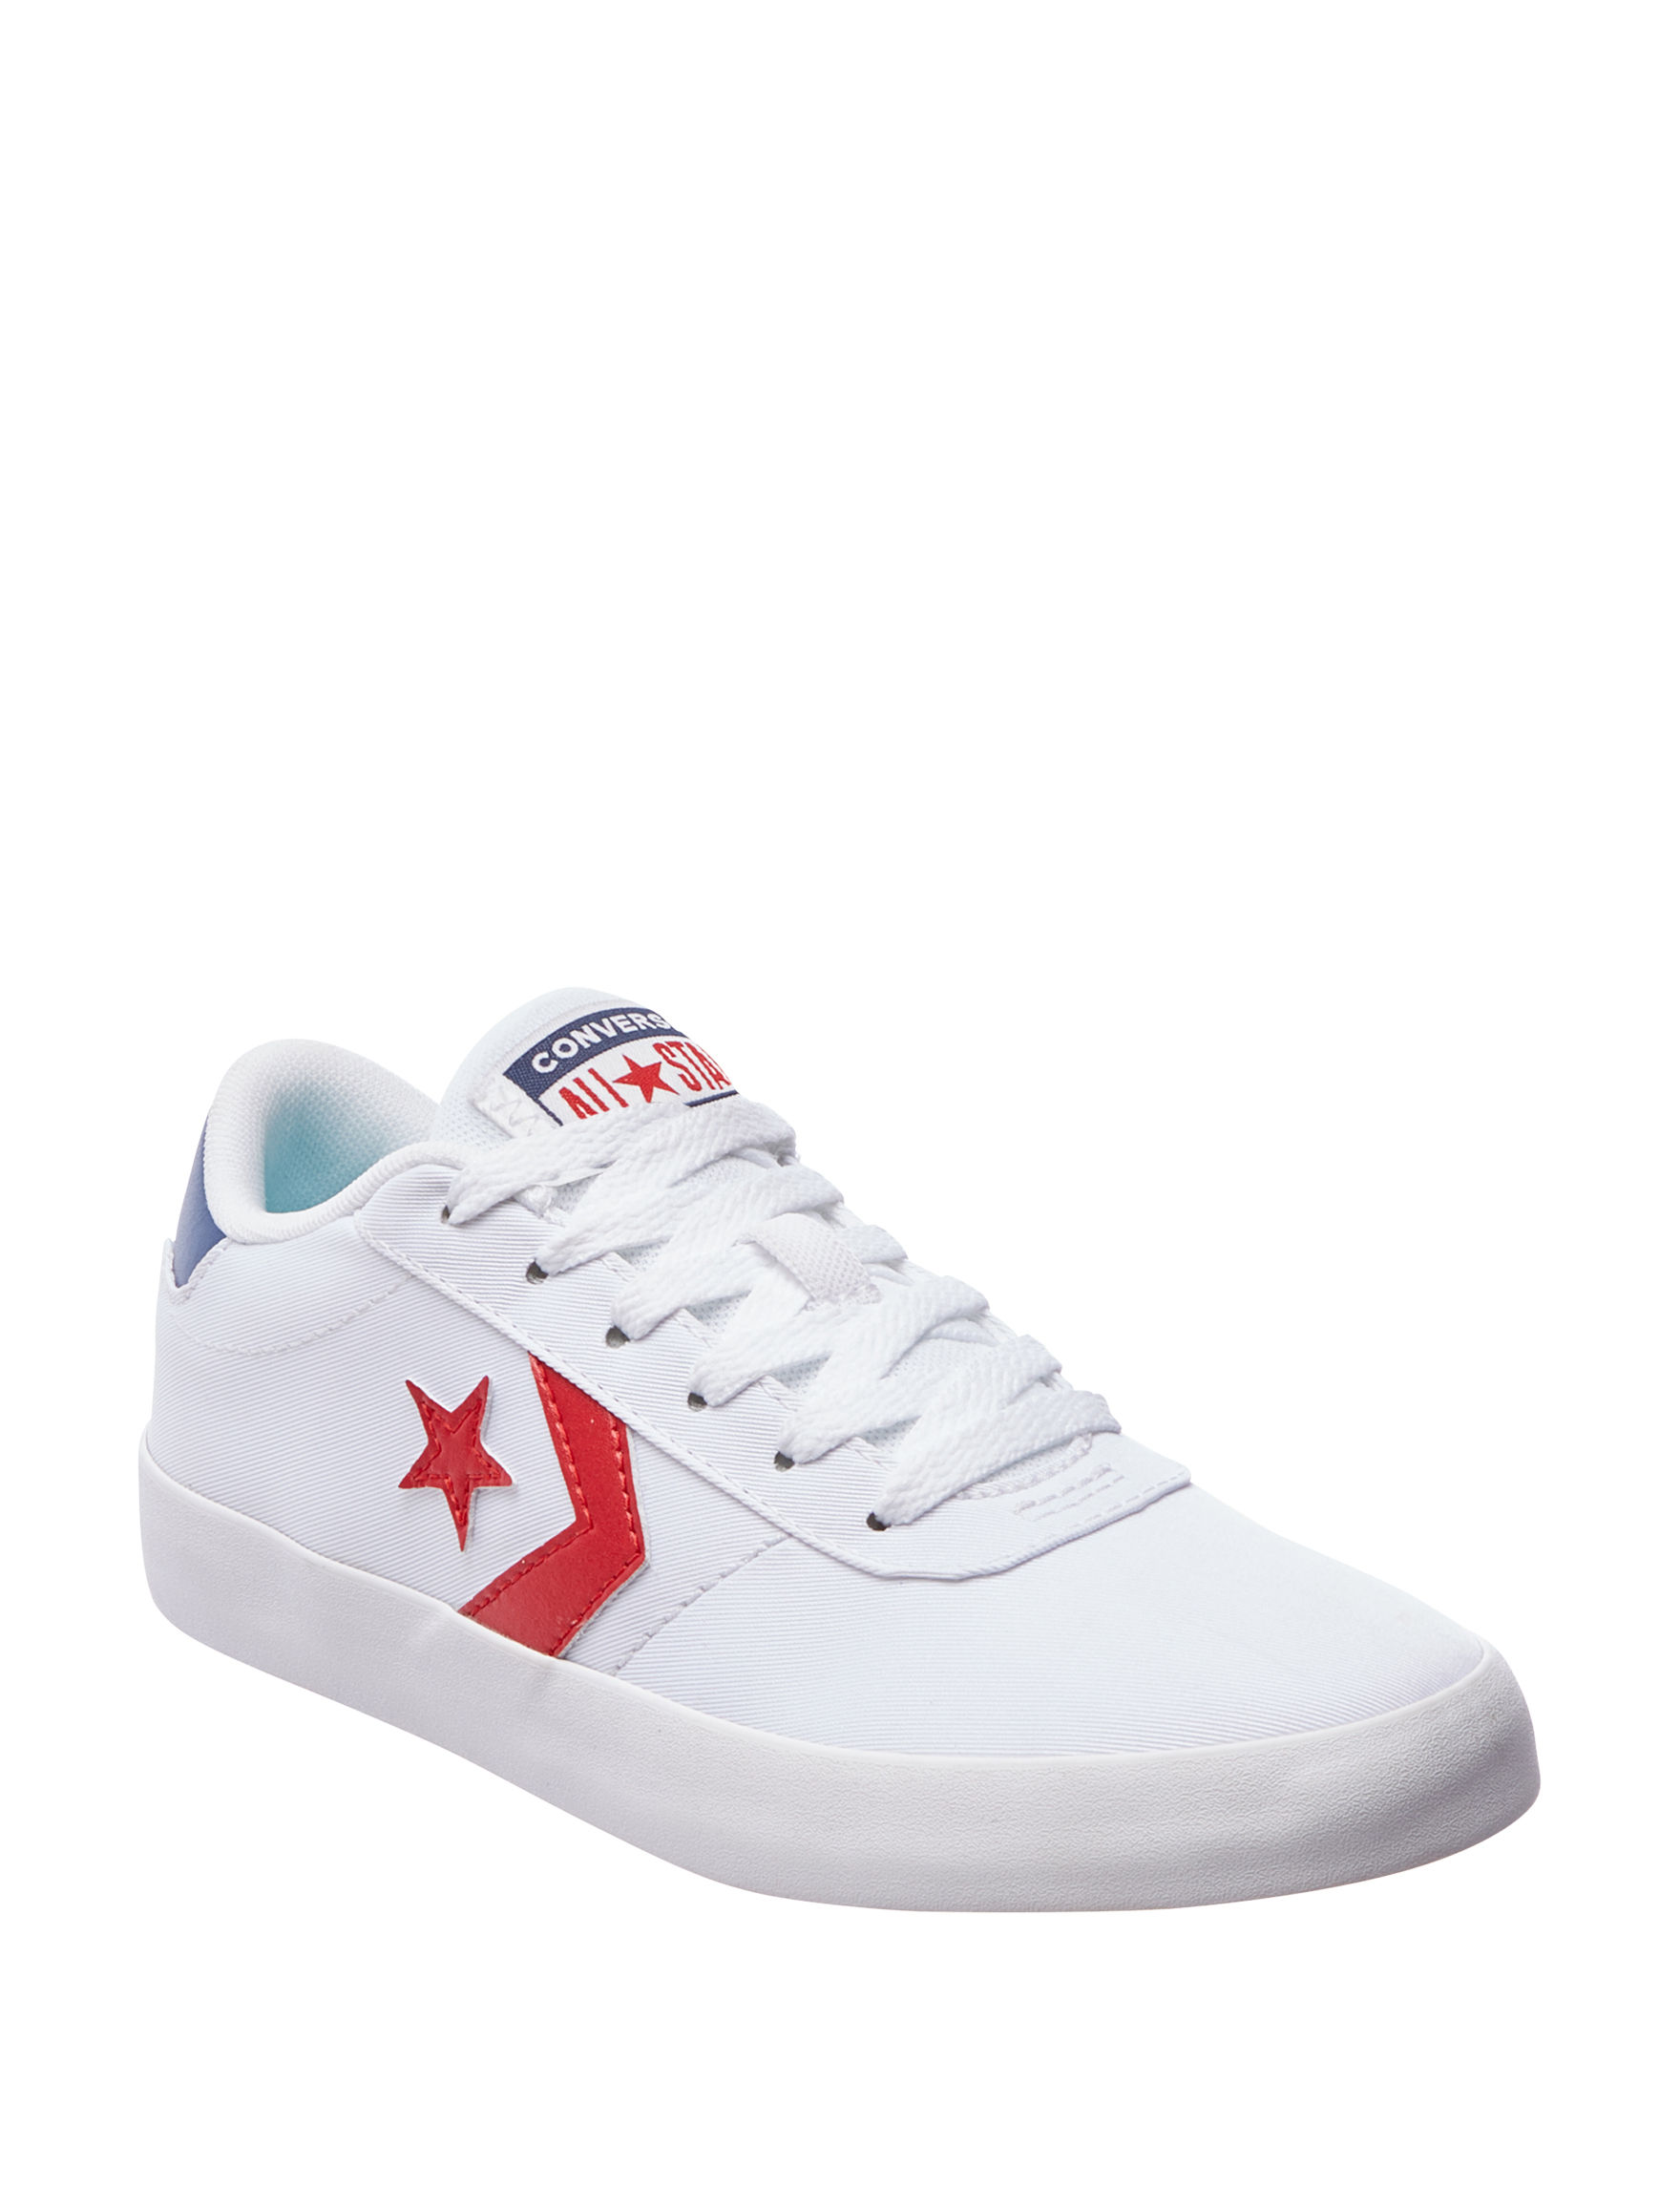 Converse White / Navy / Red